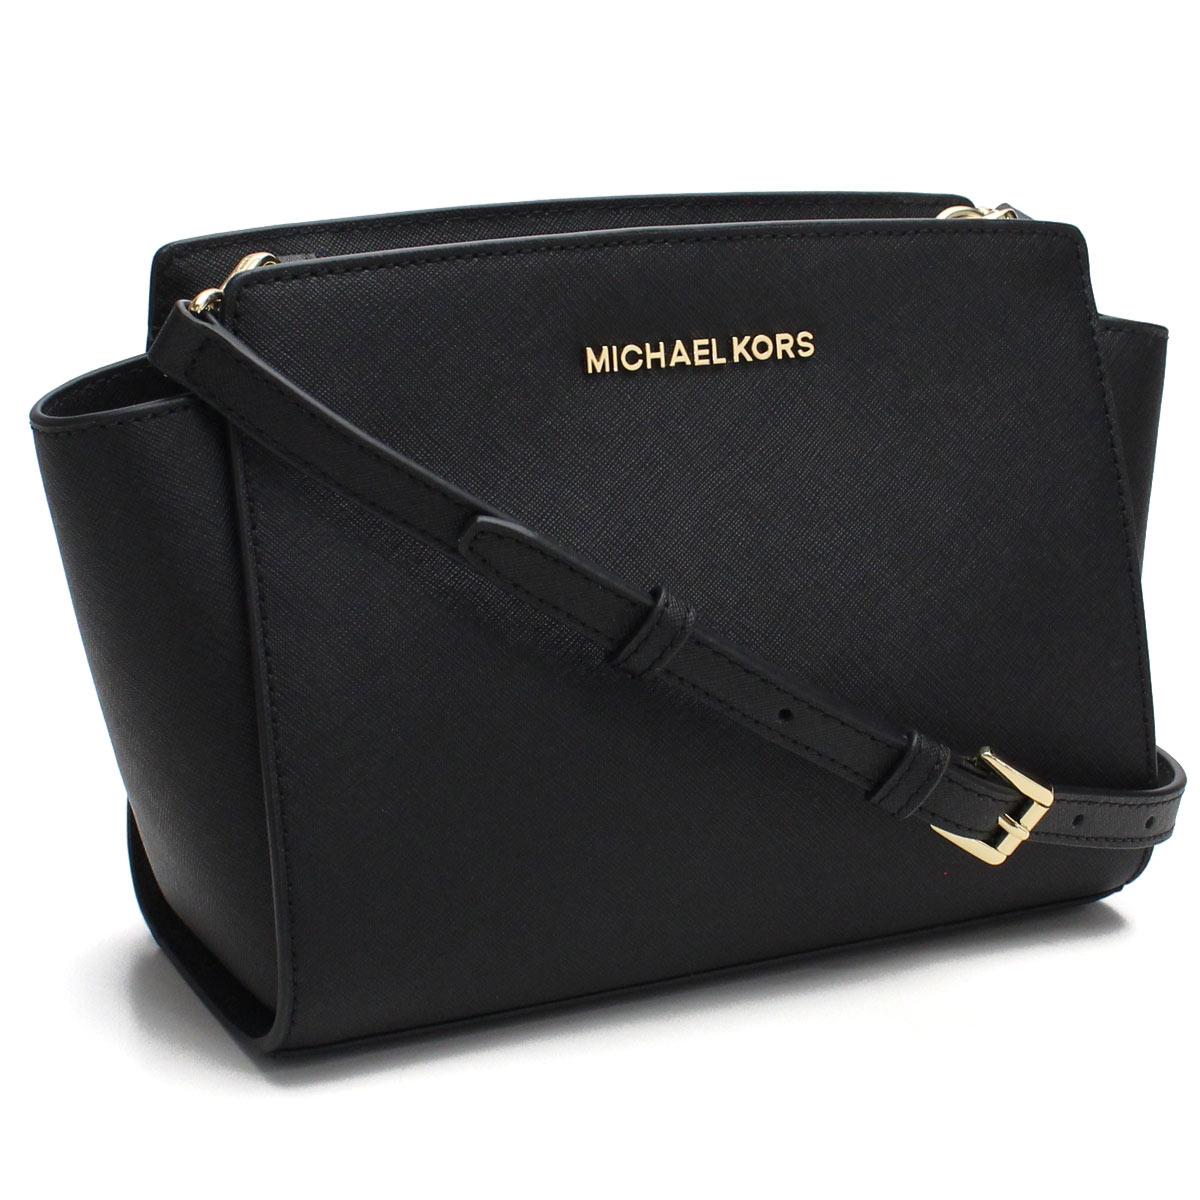 cdd1672ea714 )Michael Kors (MICHAEL KORS) SELMA shoulder bag 30T3GLMM2L BLACK black(  taxfree/send by EMS/authentic/A brand new item ) | Rakuten Global Market